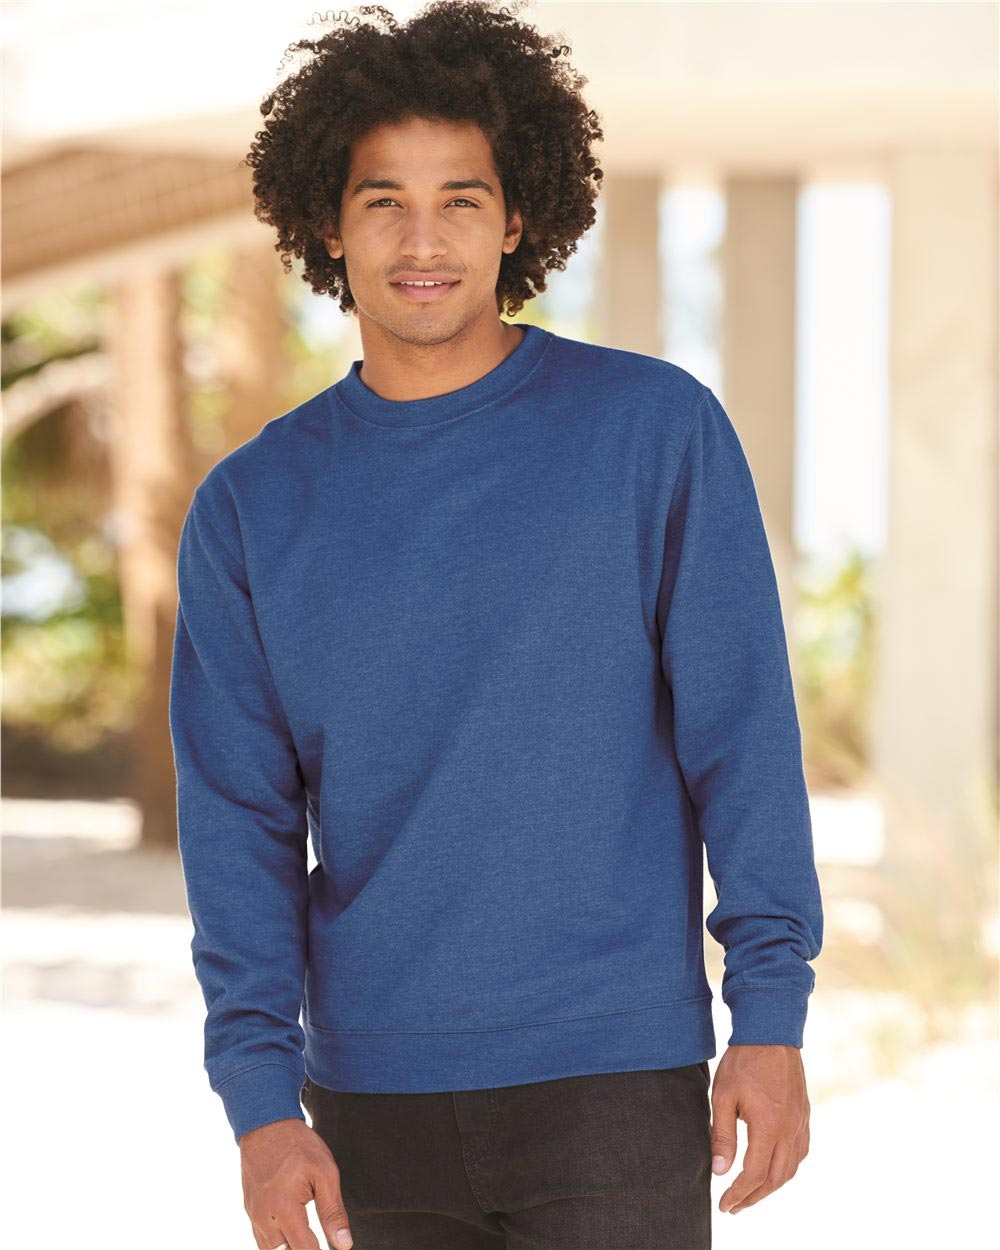 Independent Trading Co. SS3000 - Midweight Crewneck Sweatshirt